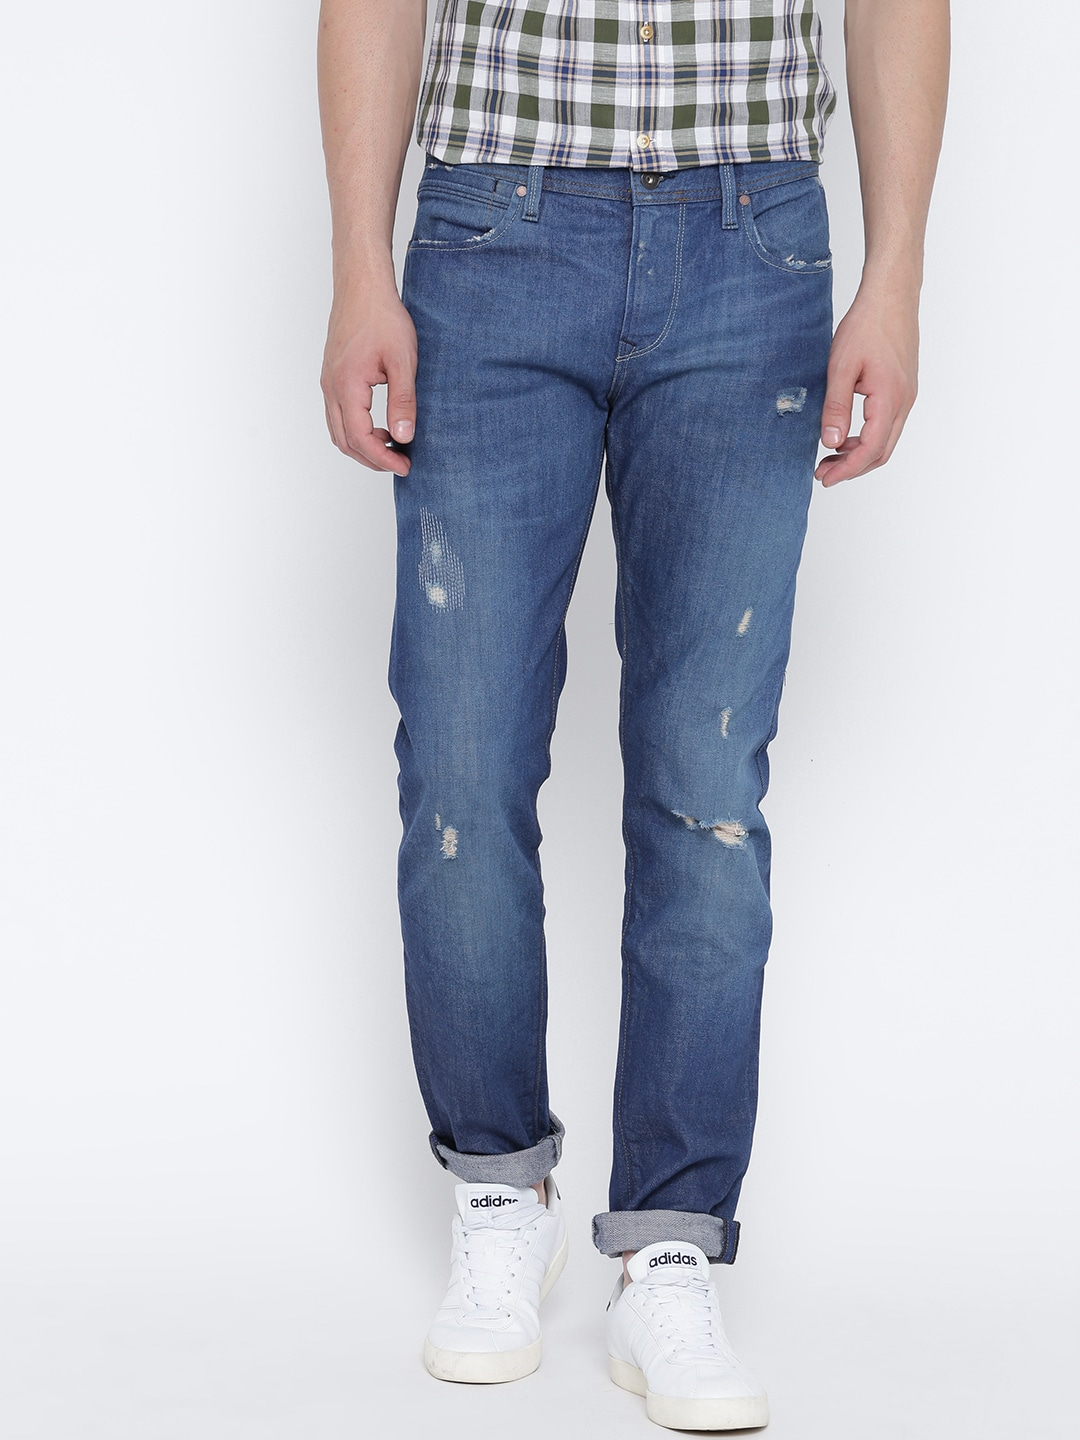 Pepe Jeans   Pepe Jeans Mens Jeans